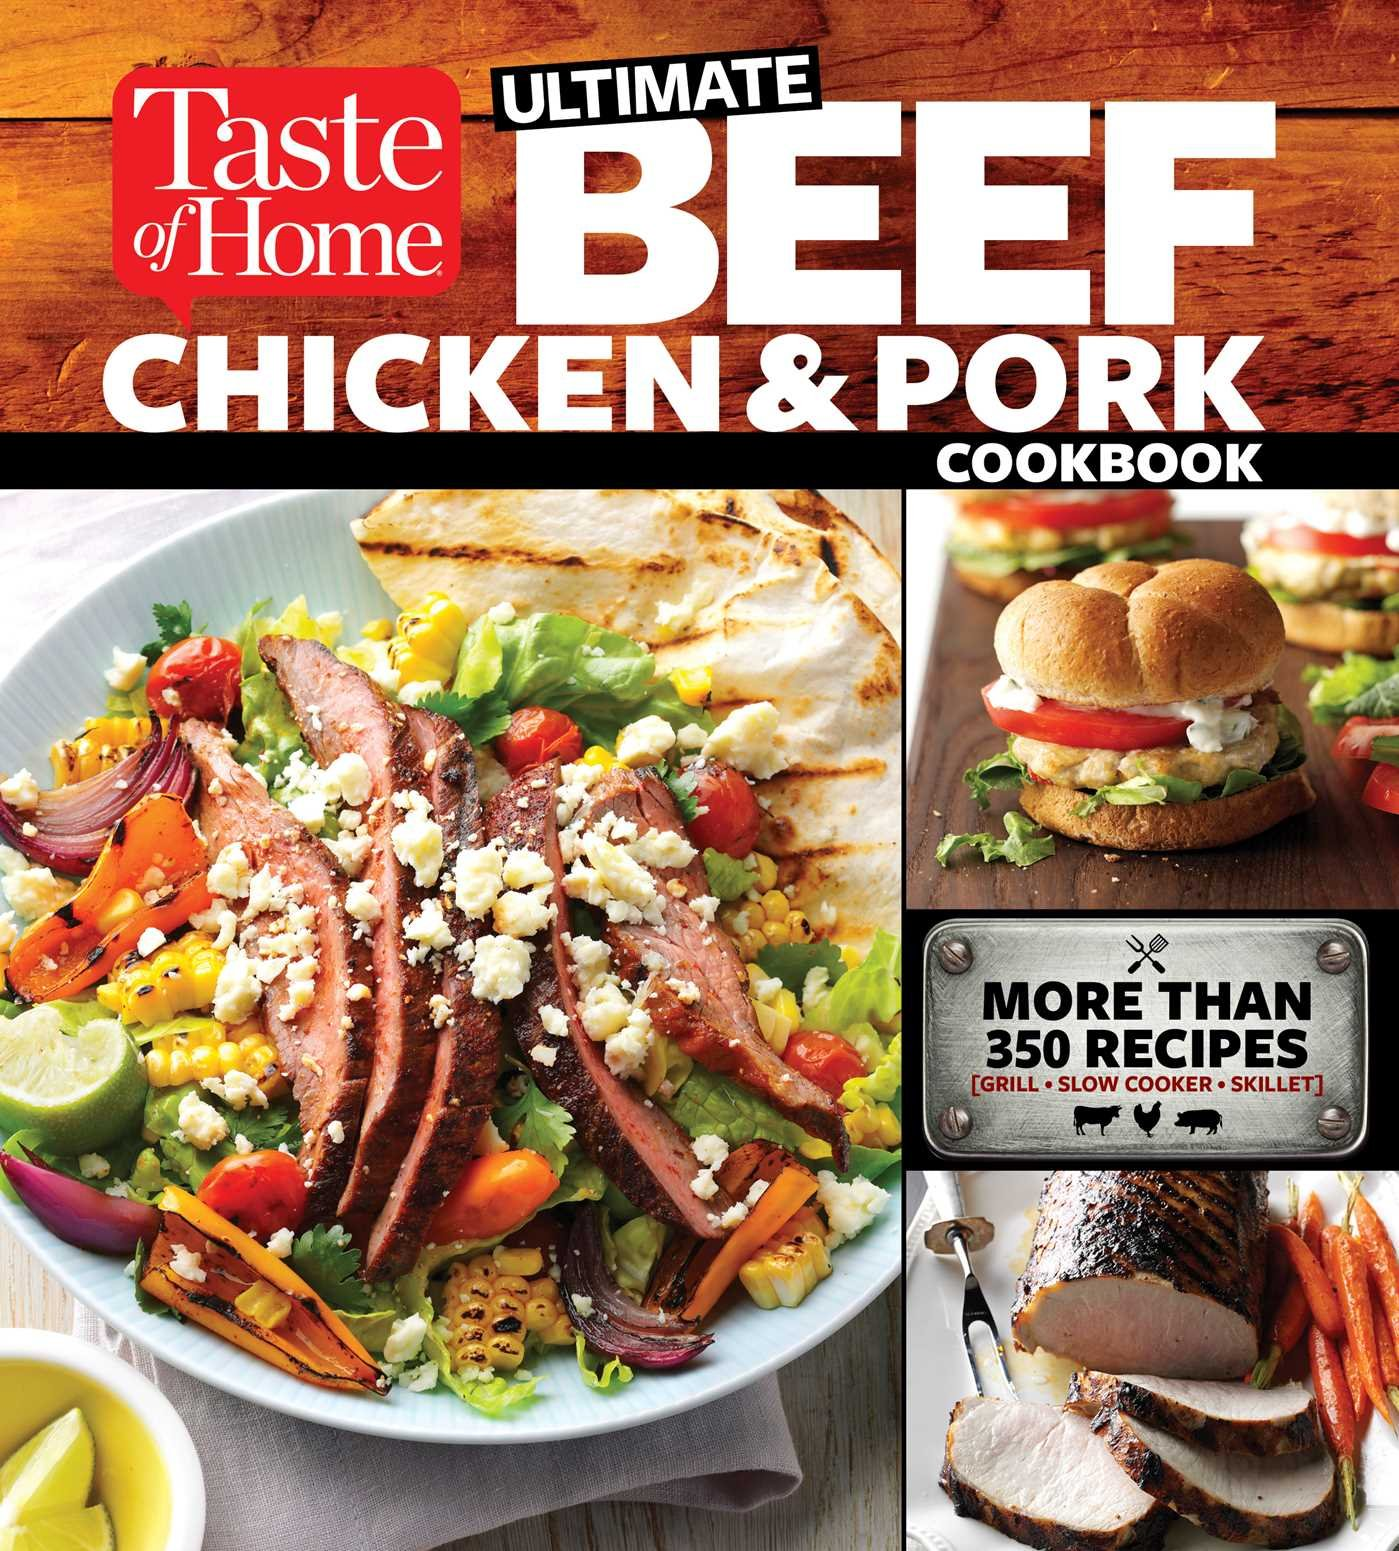 : Taste of Home Ultimate Beef Chicken and Pork Cookbook